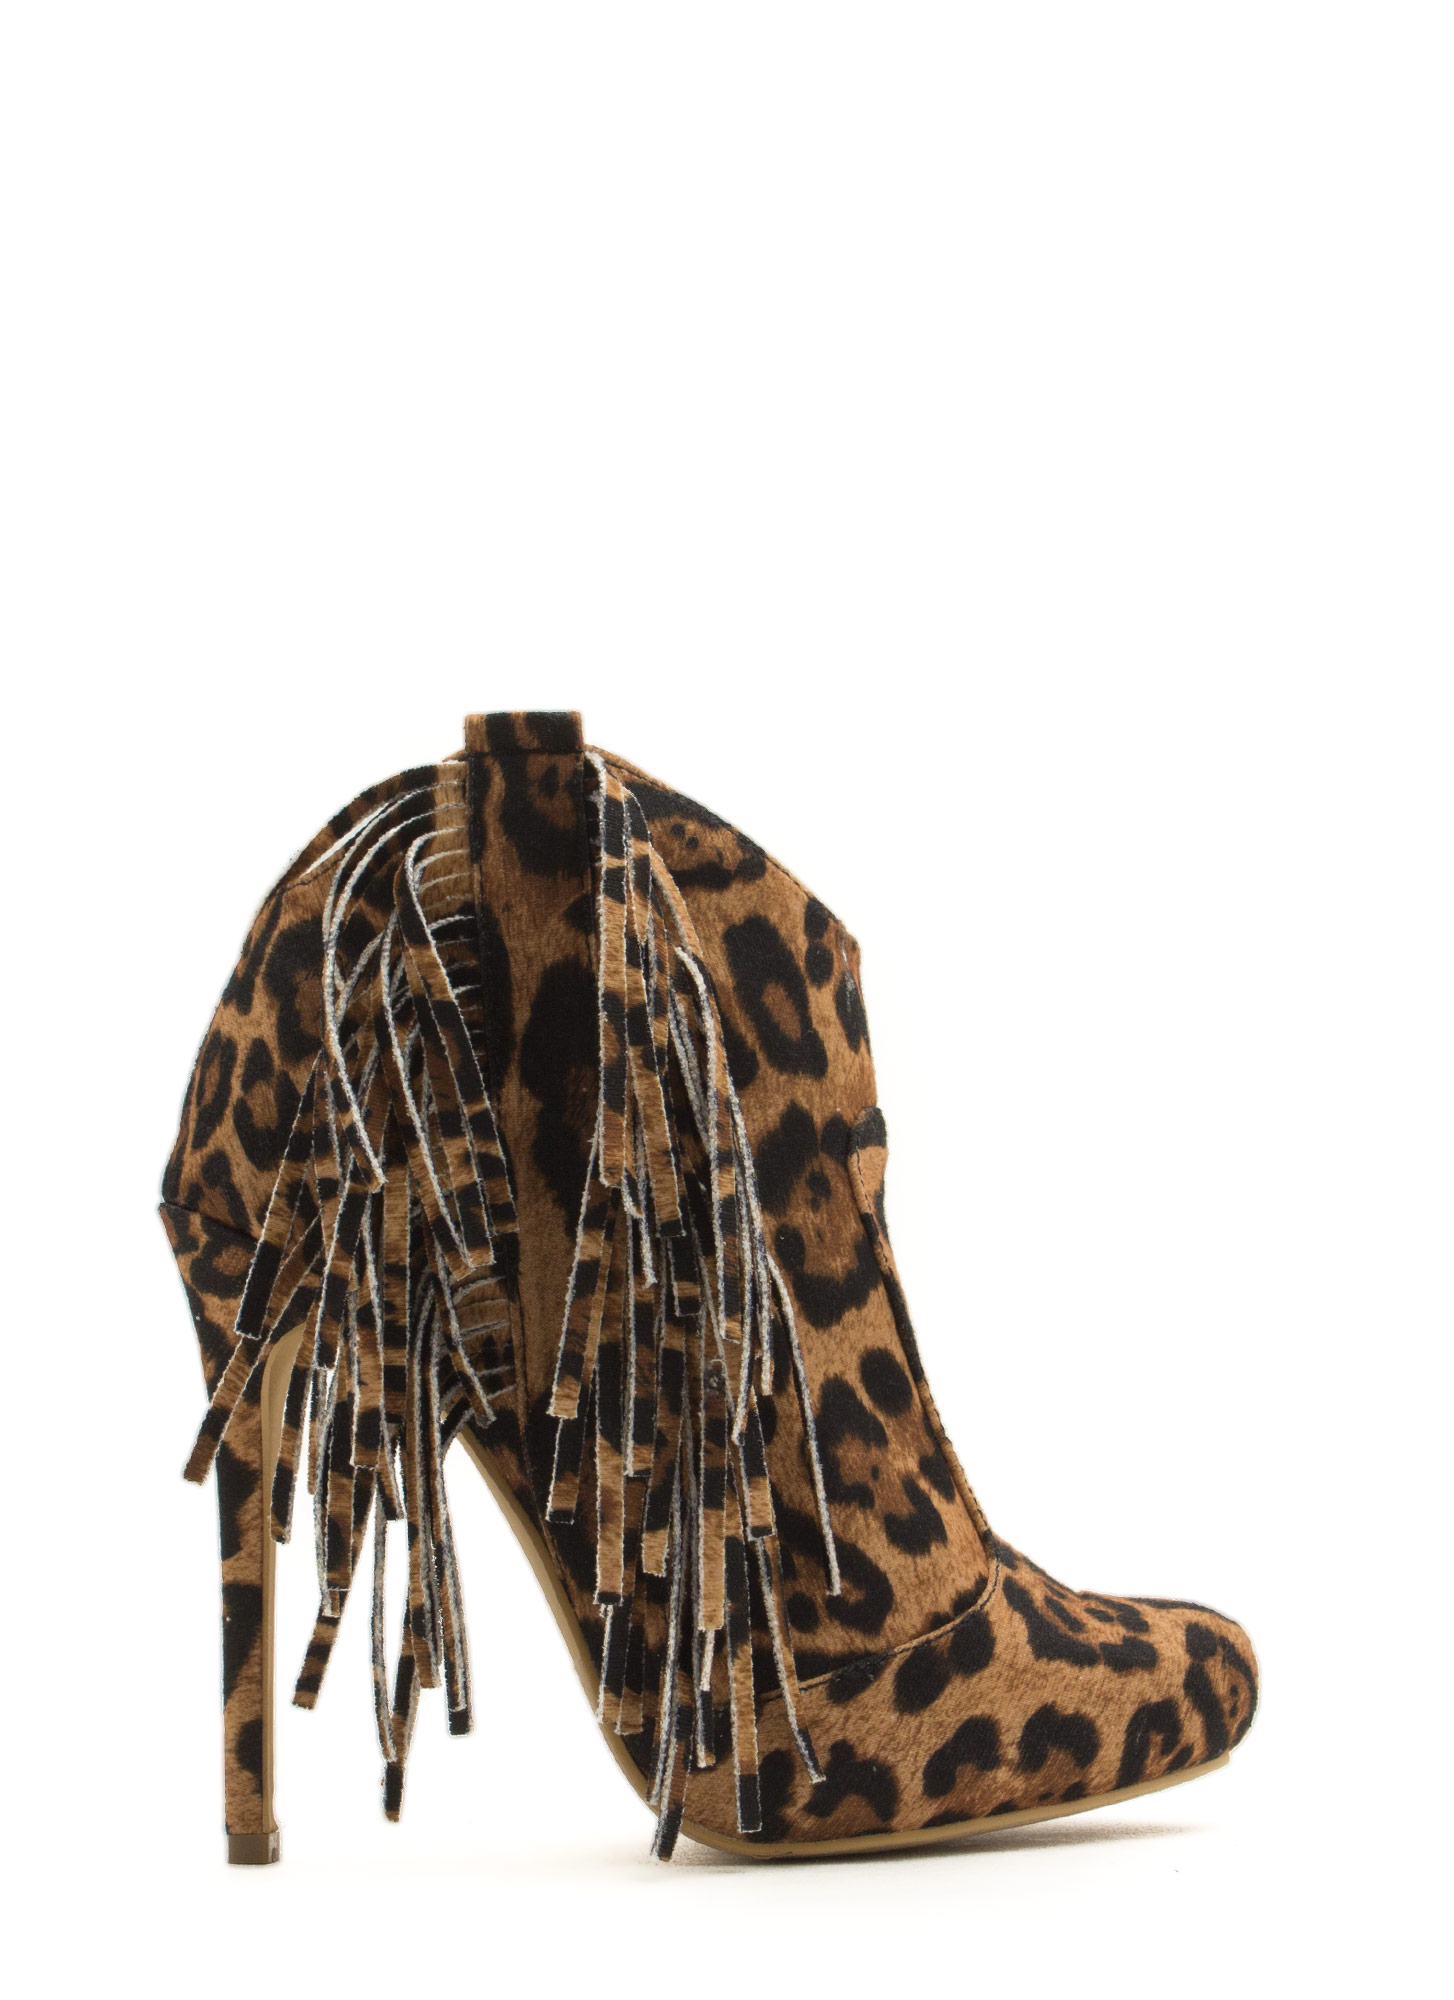 Fringe With Benefits Stiletto Booties LEOPARD